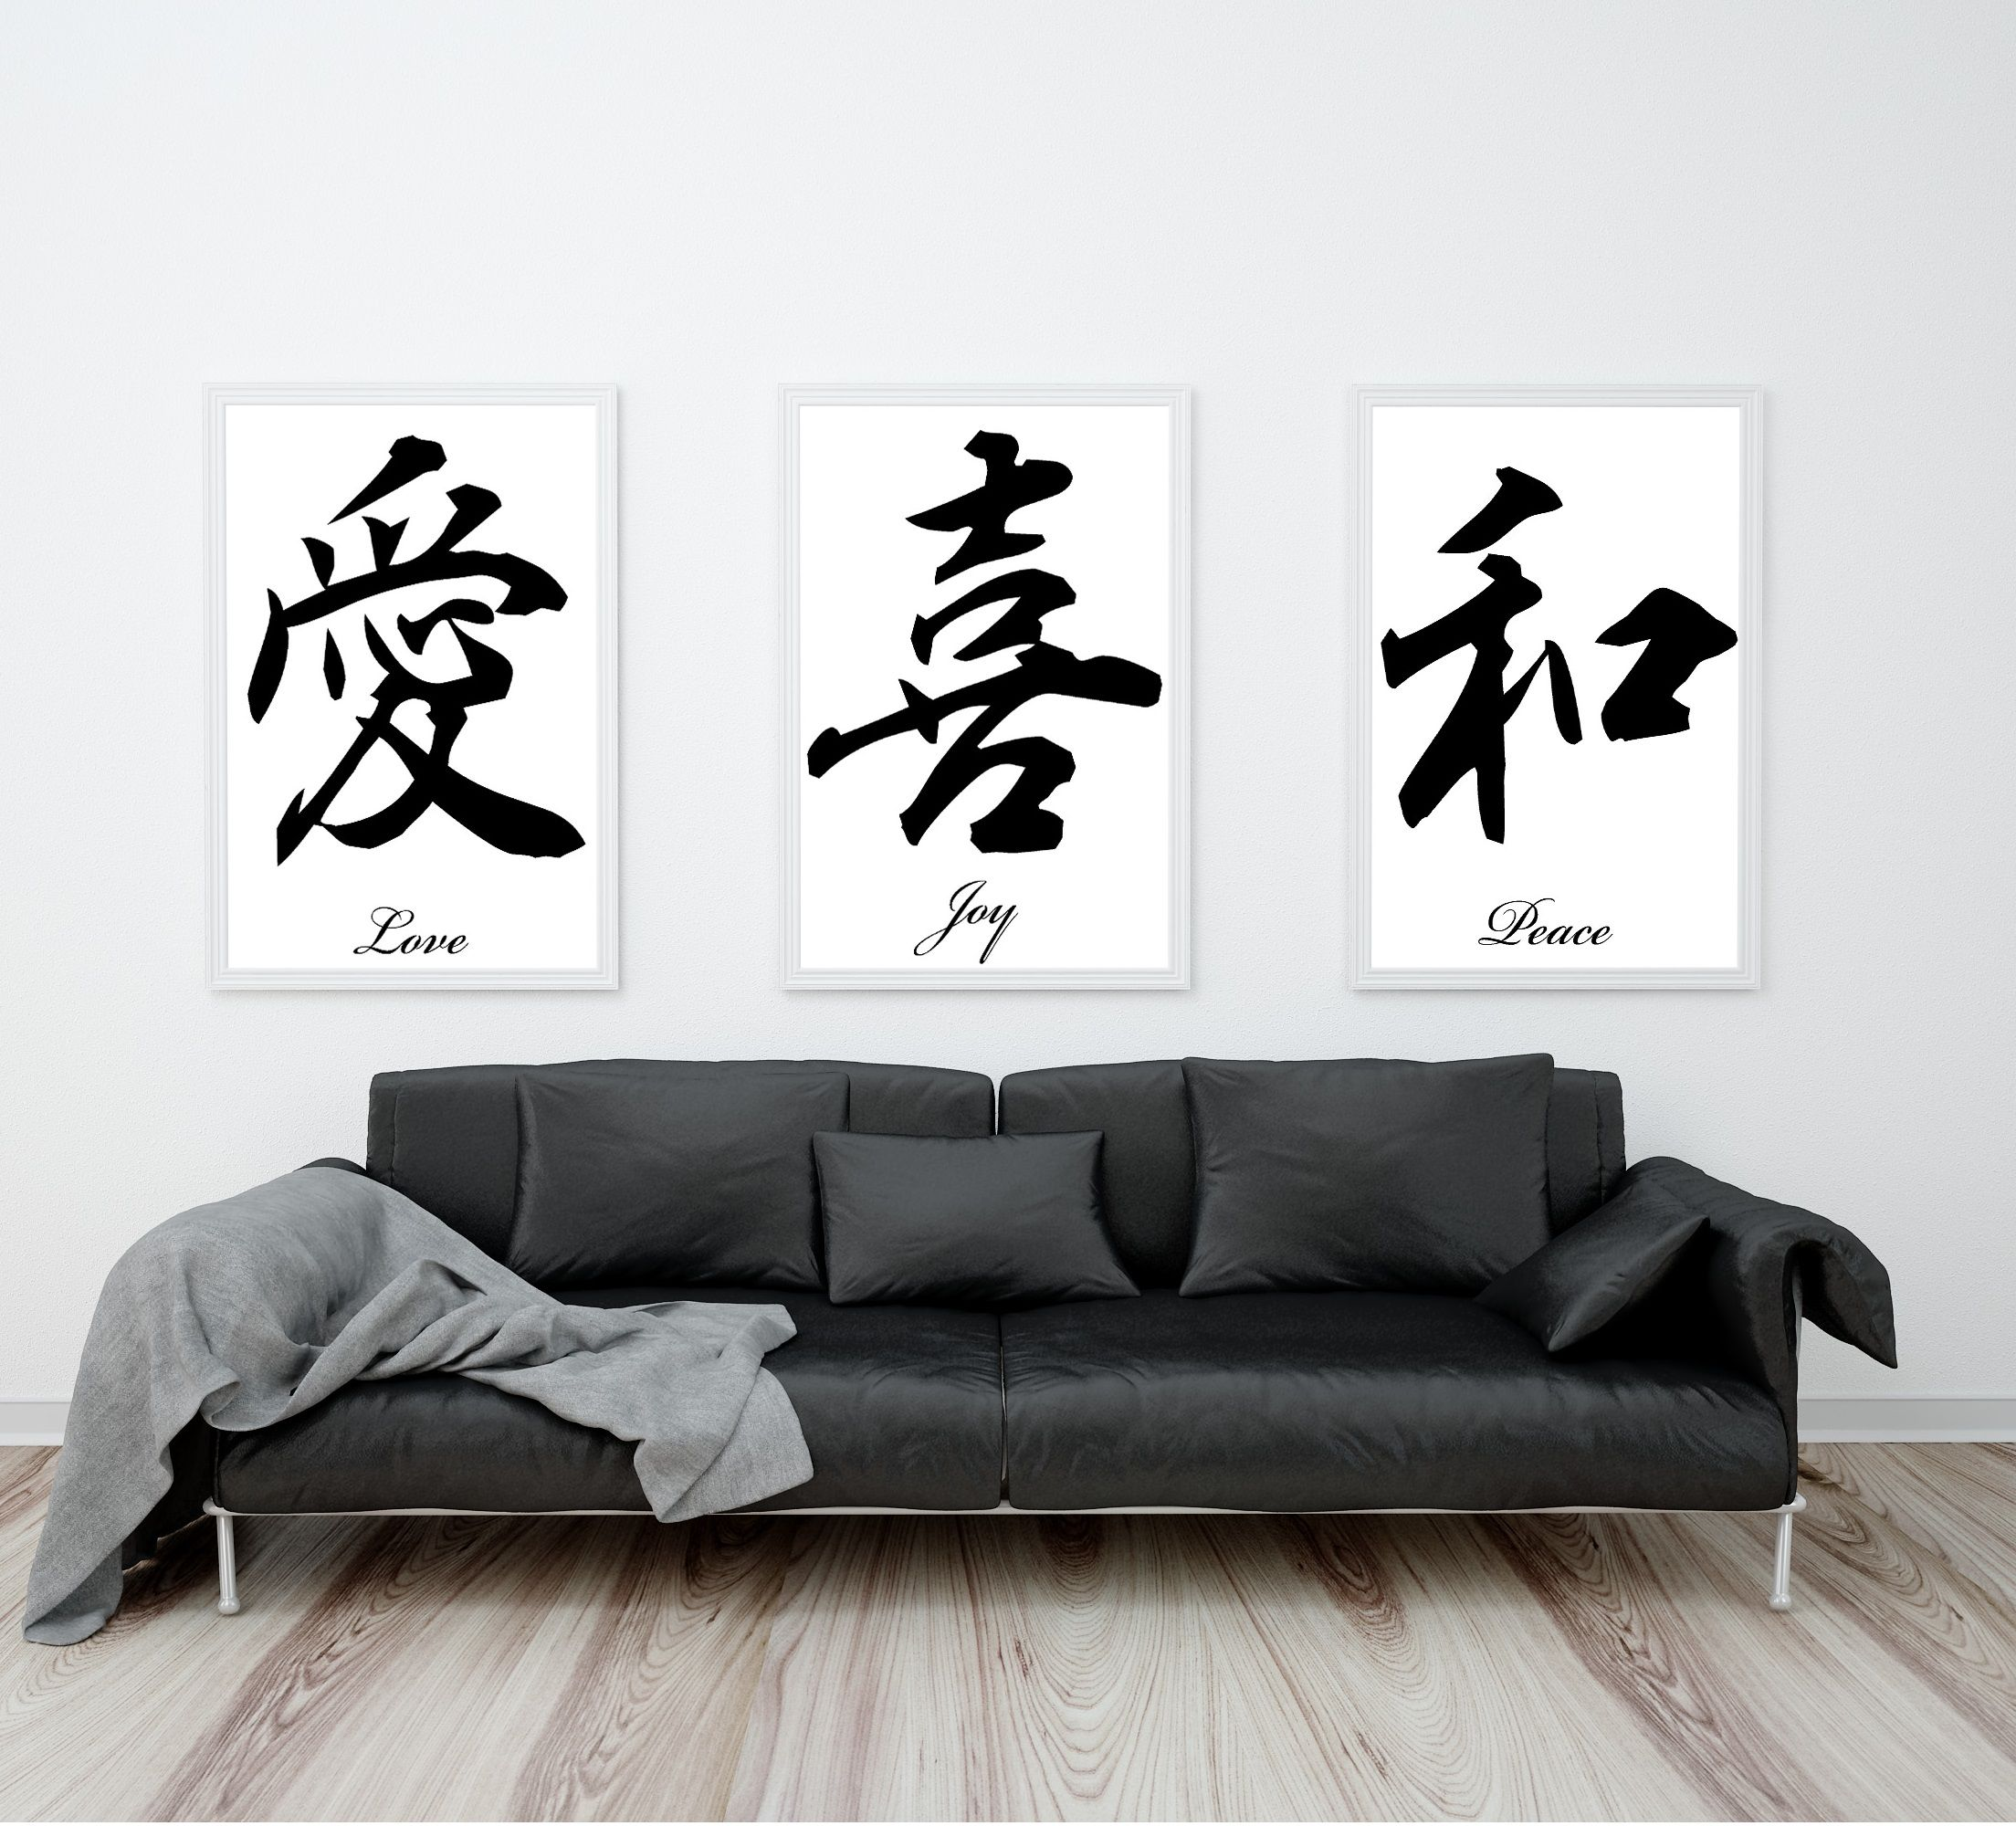 Exceptional Love, Peace, Joy Japanese Kanji Wall Decor Simple And Elegant Kanji Wall  Decor. Three Different Kanji Characters: Love, Peace, And Joy.